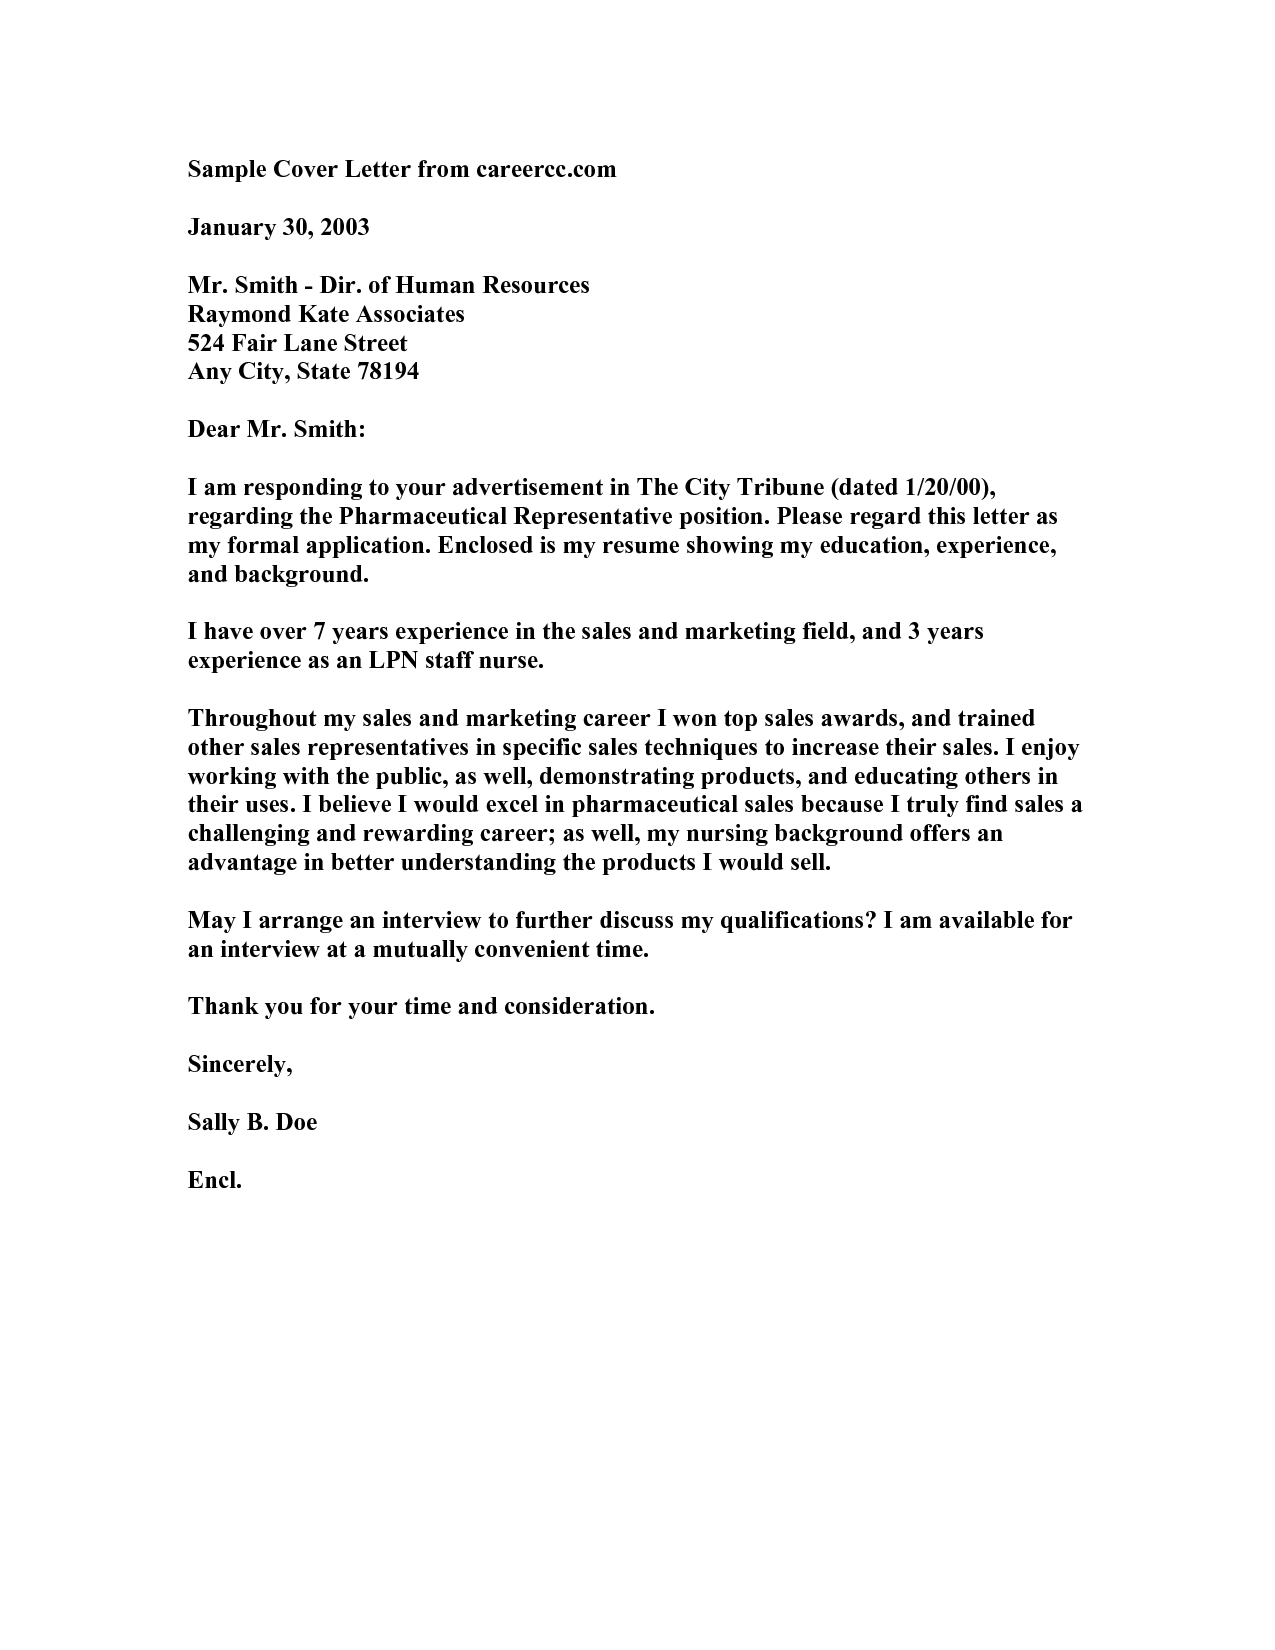 Sample Letter Of Recommendation For A Nurse New Grad Nurse Cover